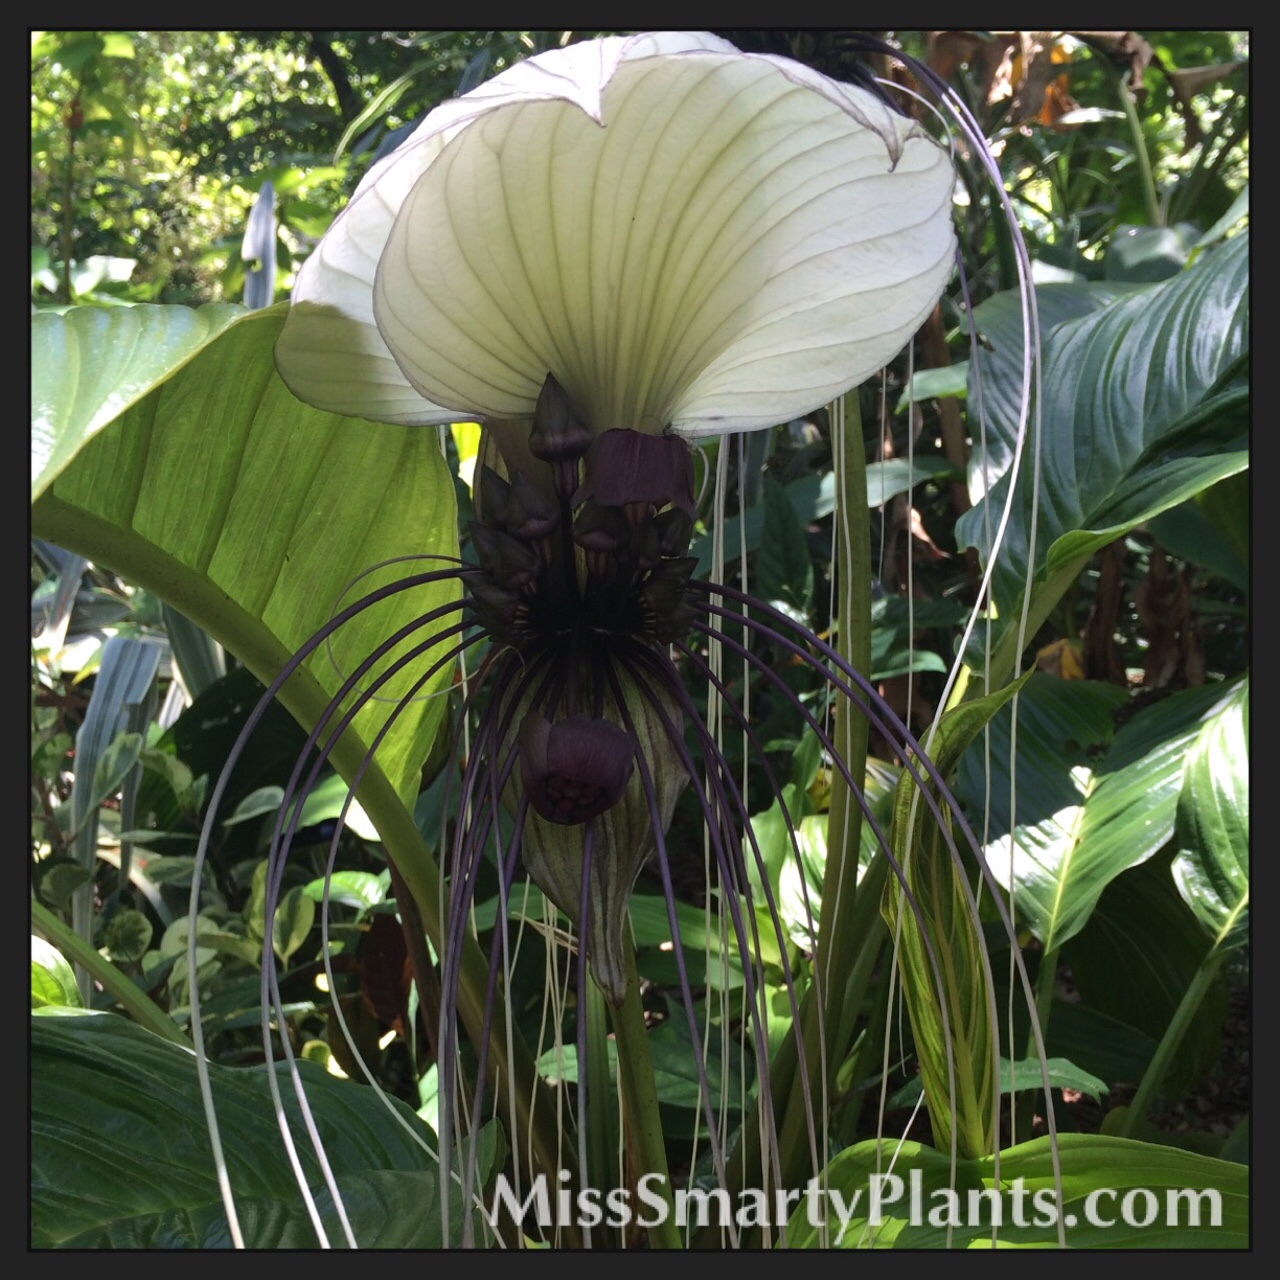 White Bat Flower Tacca integrifolia Miss Smarty Plants